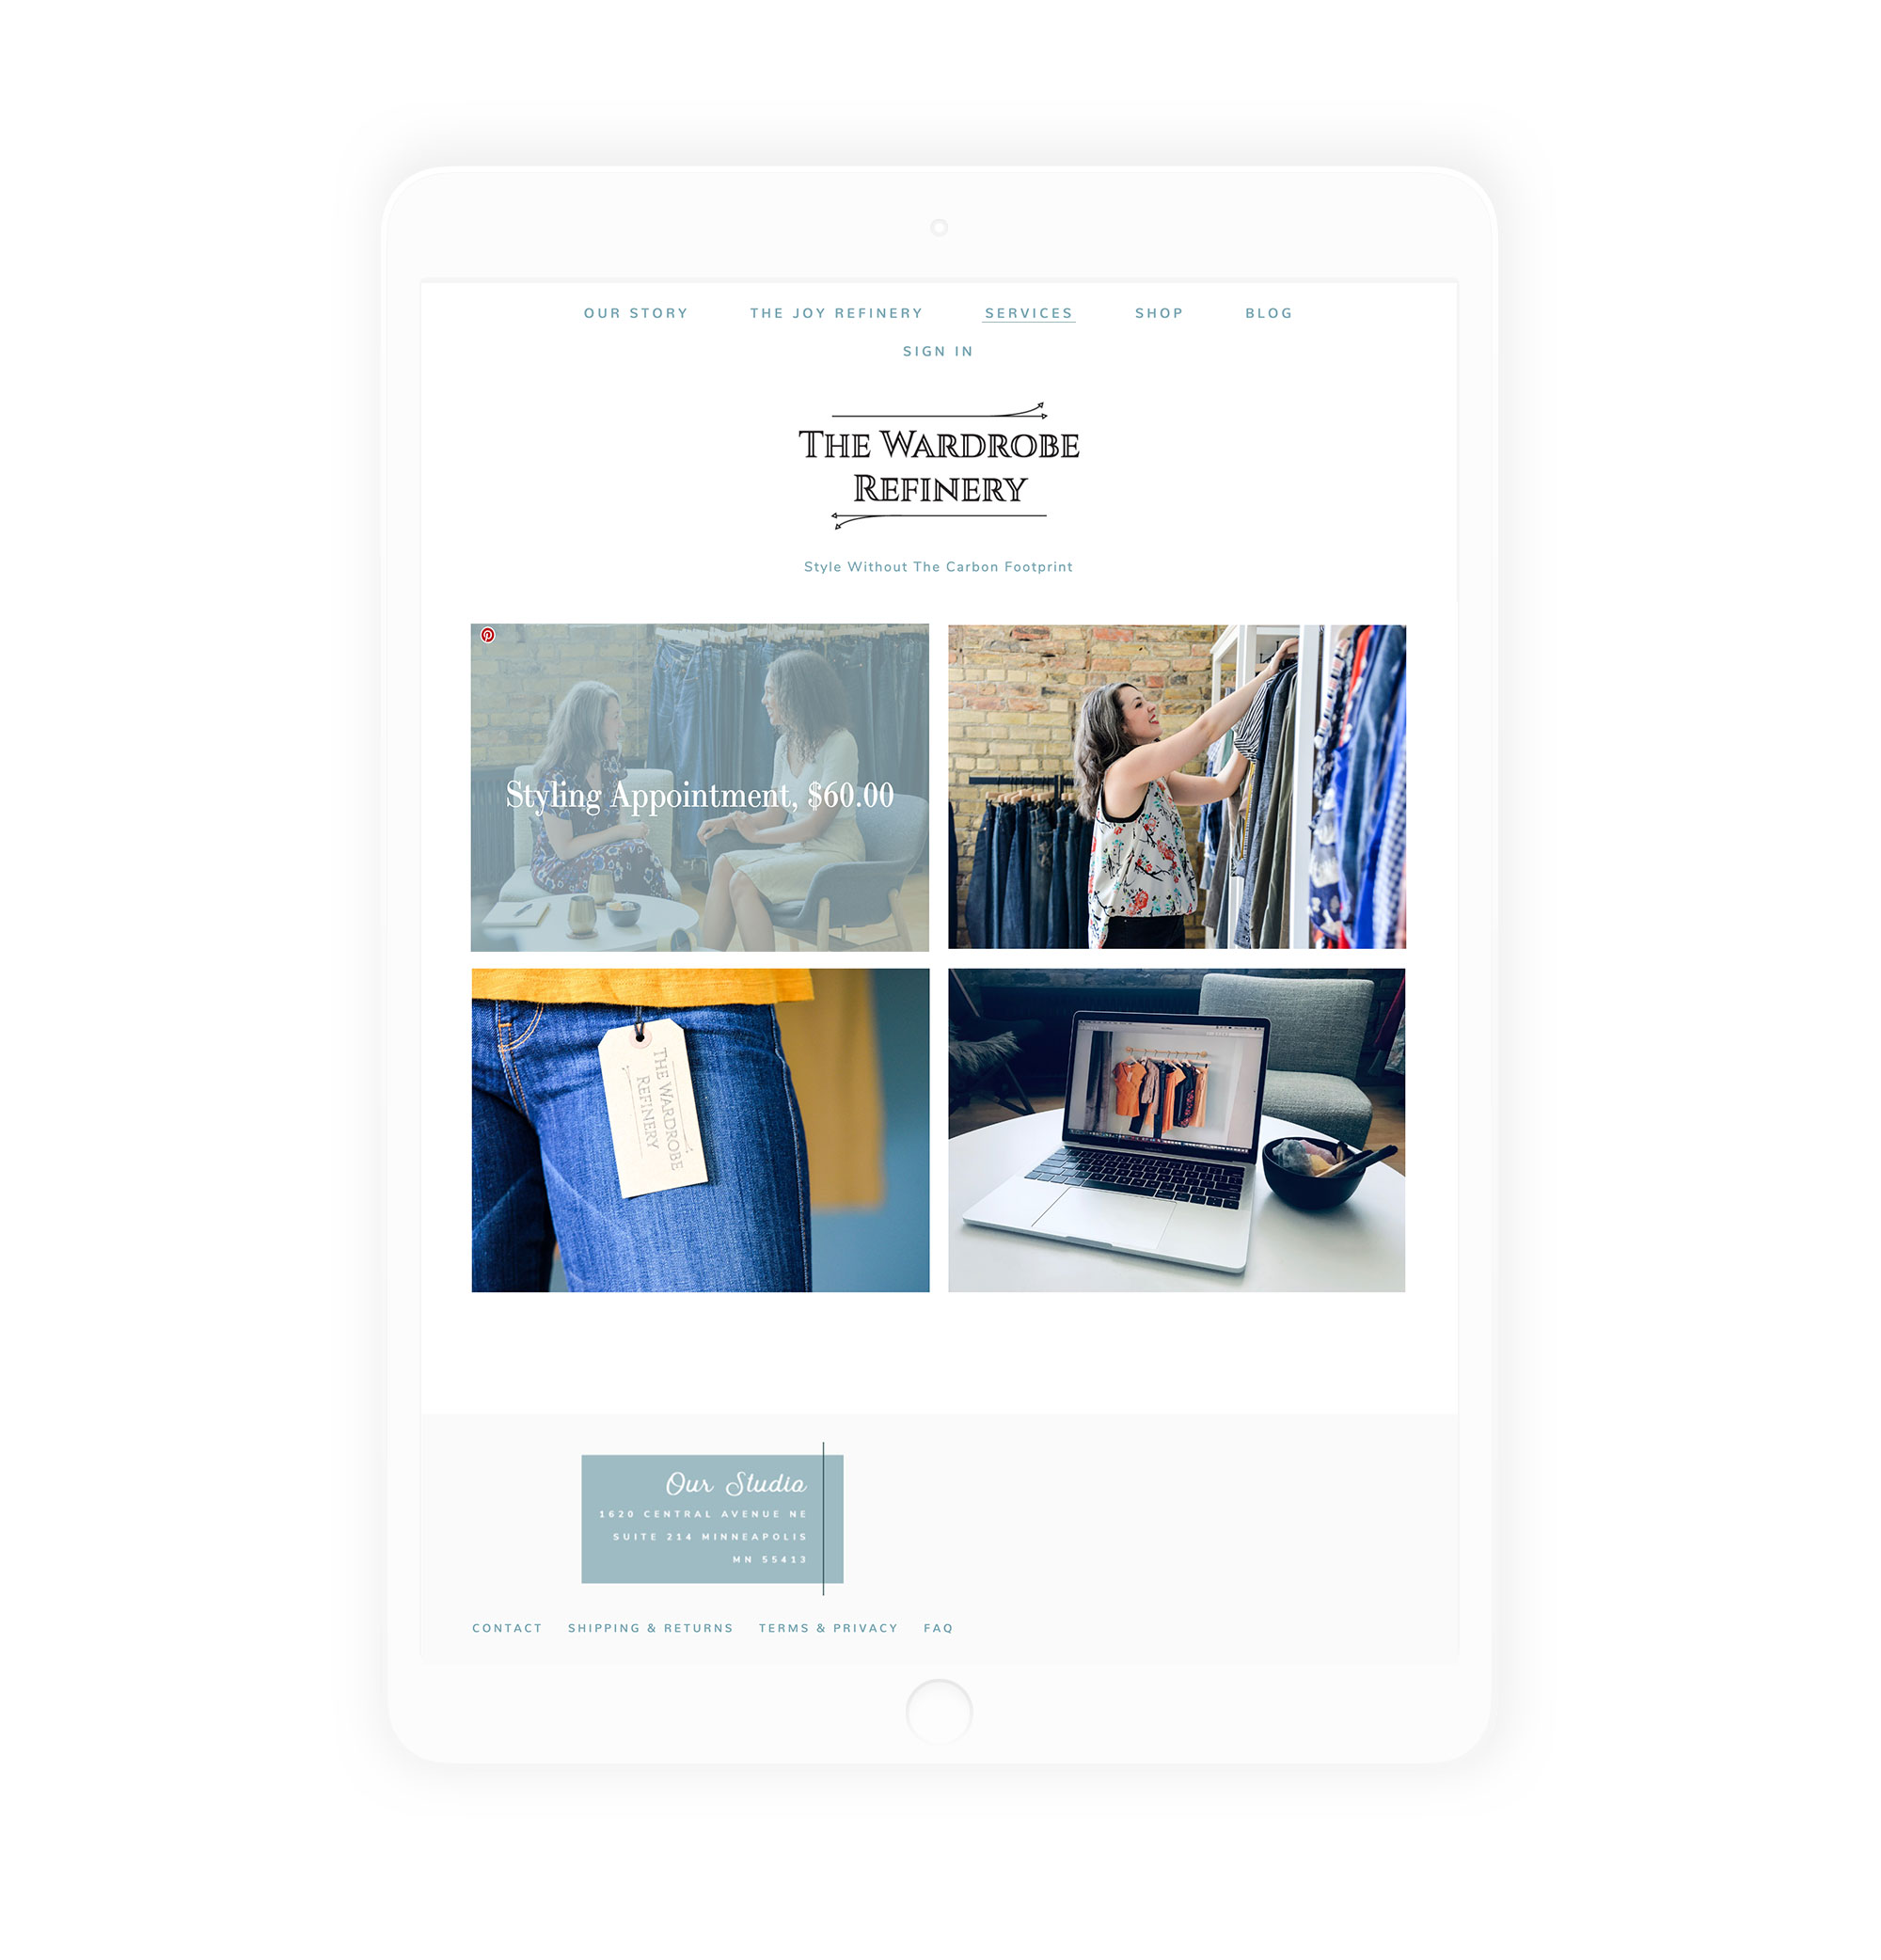 wardrobe-refinery-web-iPad-2.jpg